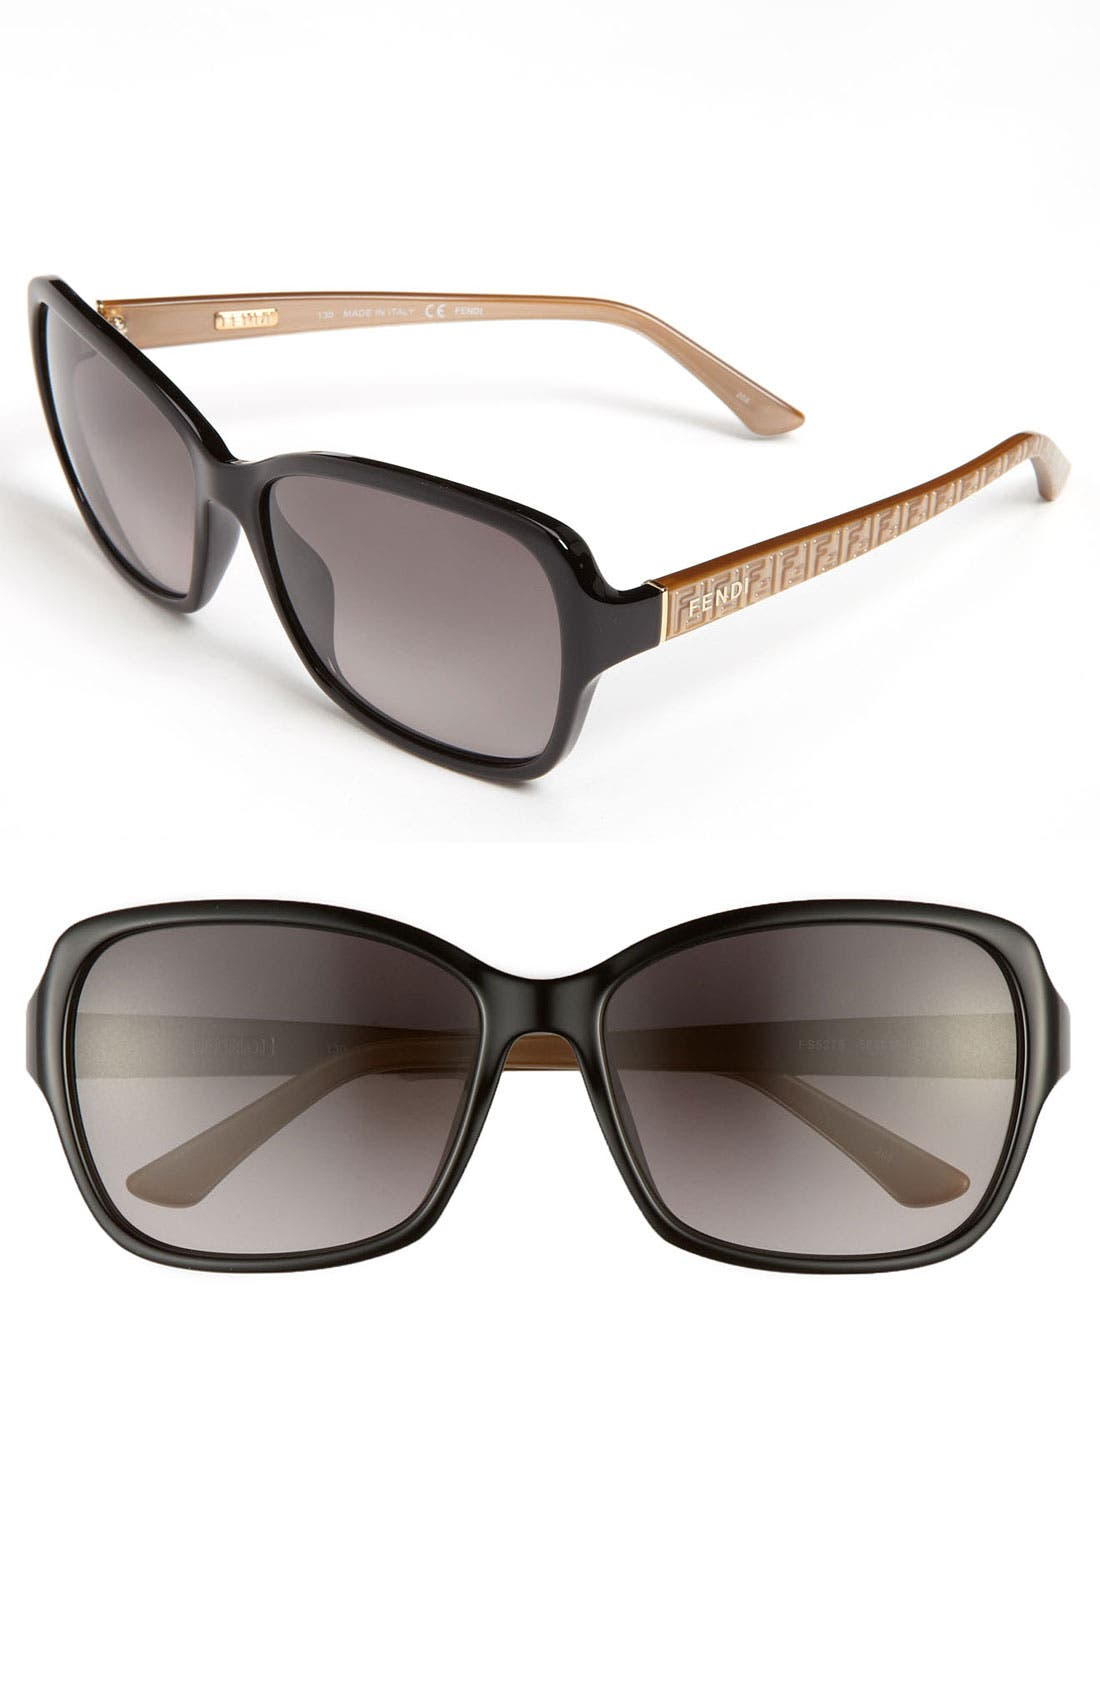 Alternate Image 1 Selected - Fendi 'Basic Mini Logo' 58mm Sunglasses